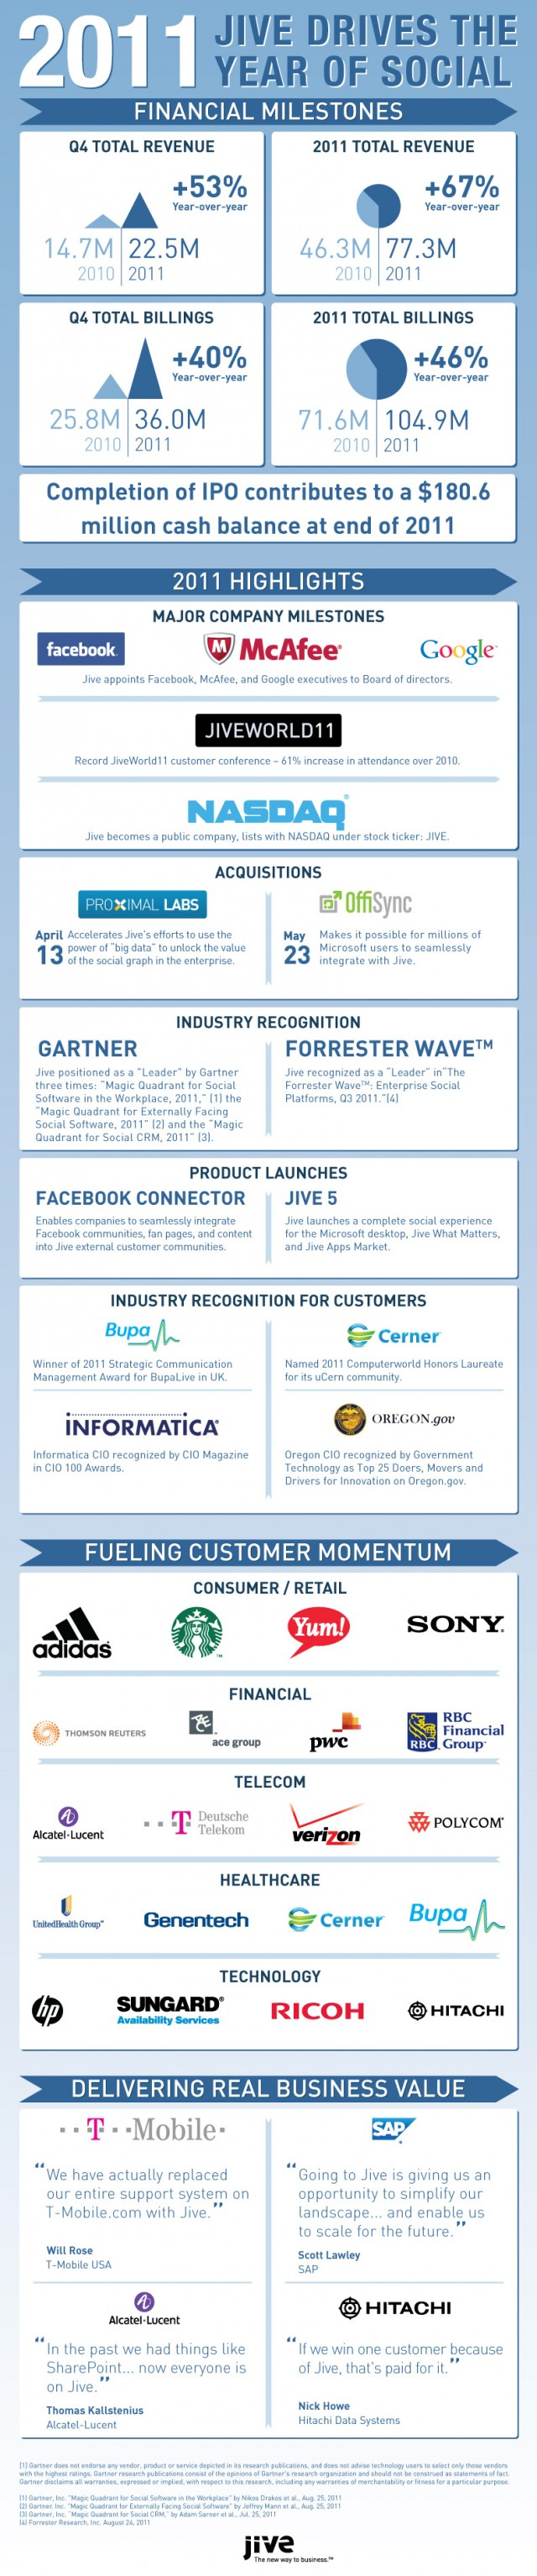 Jive 2011 Highlights Infographic